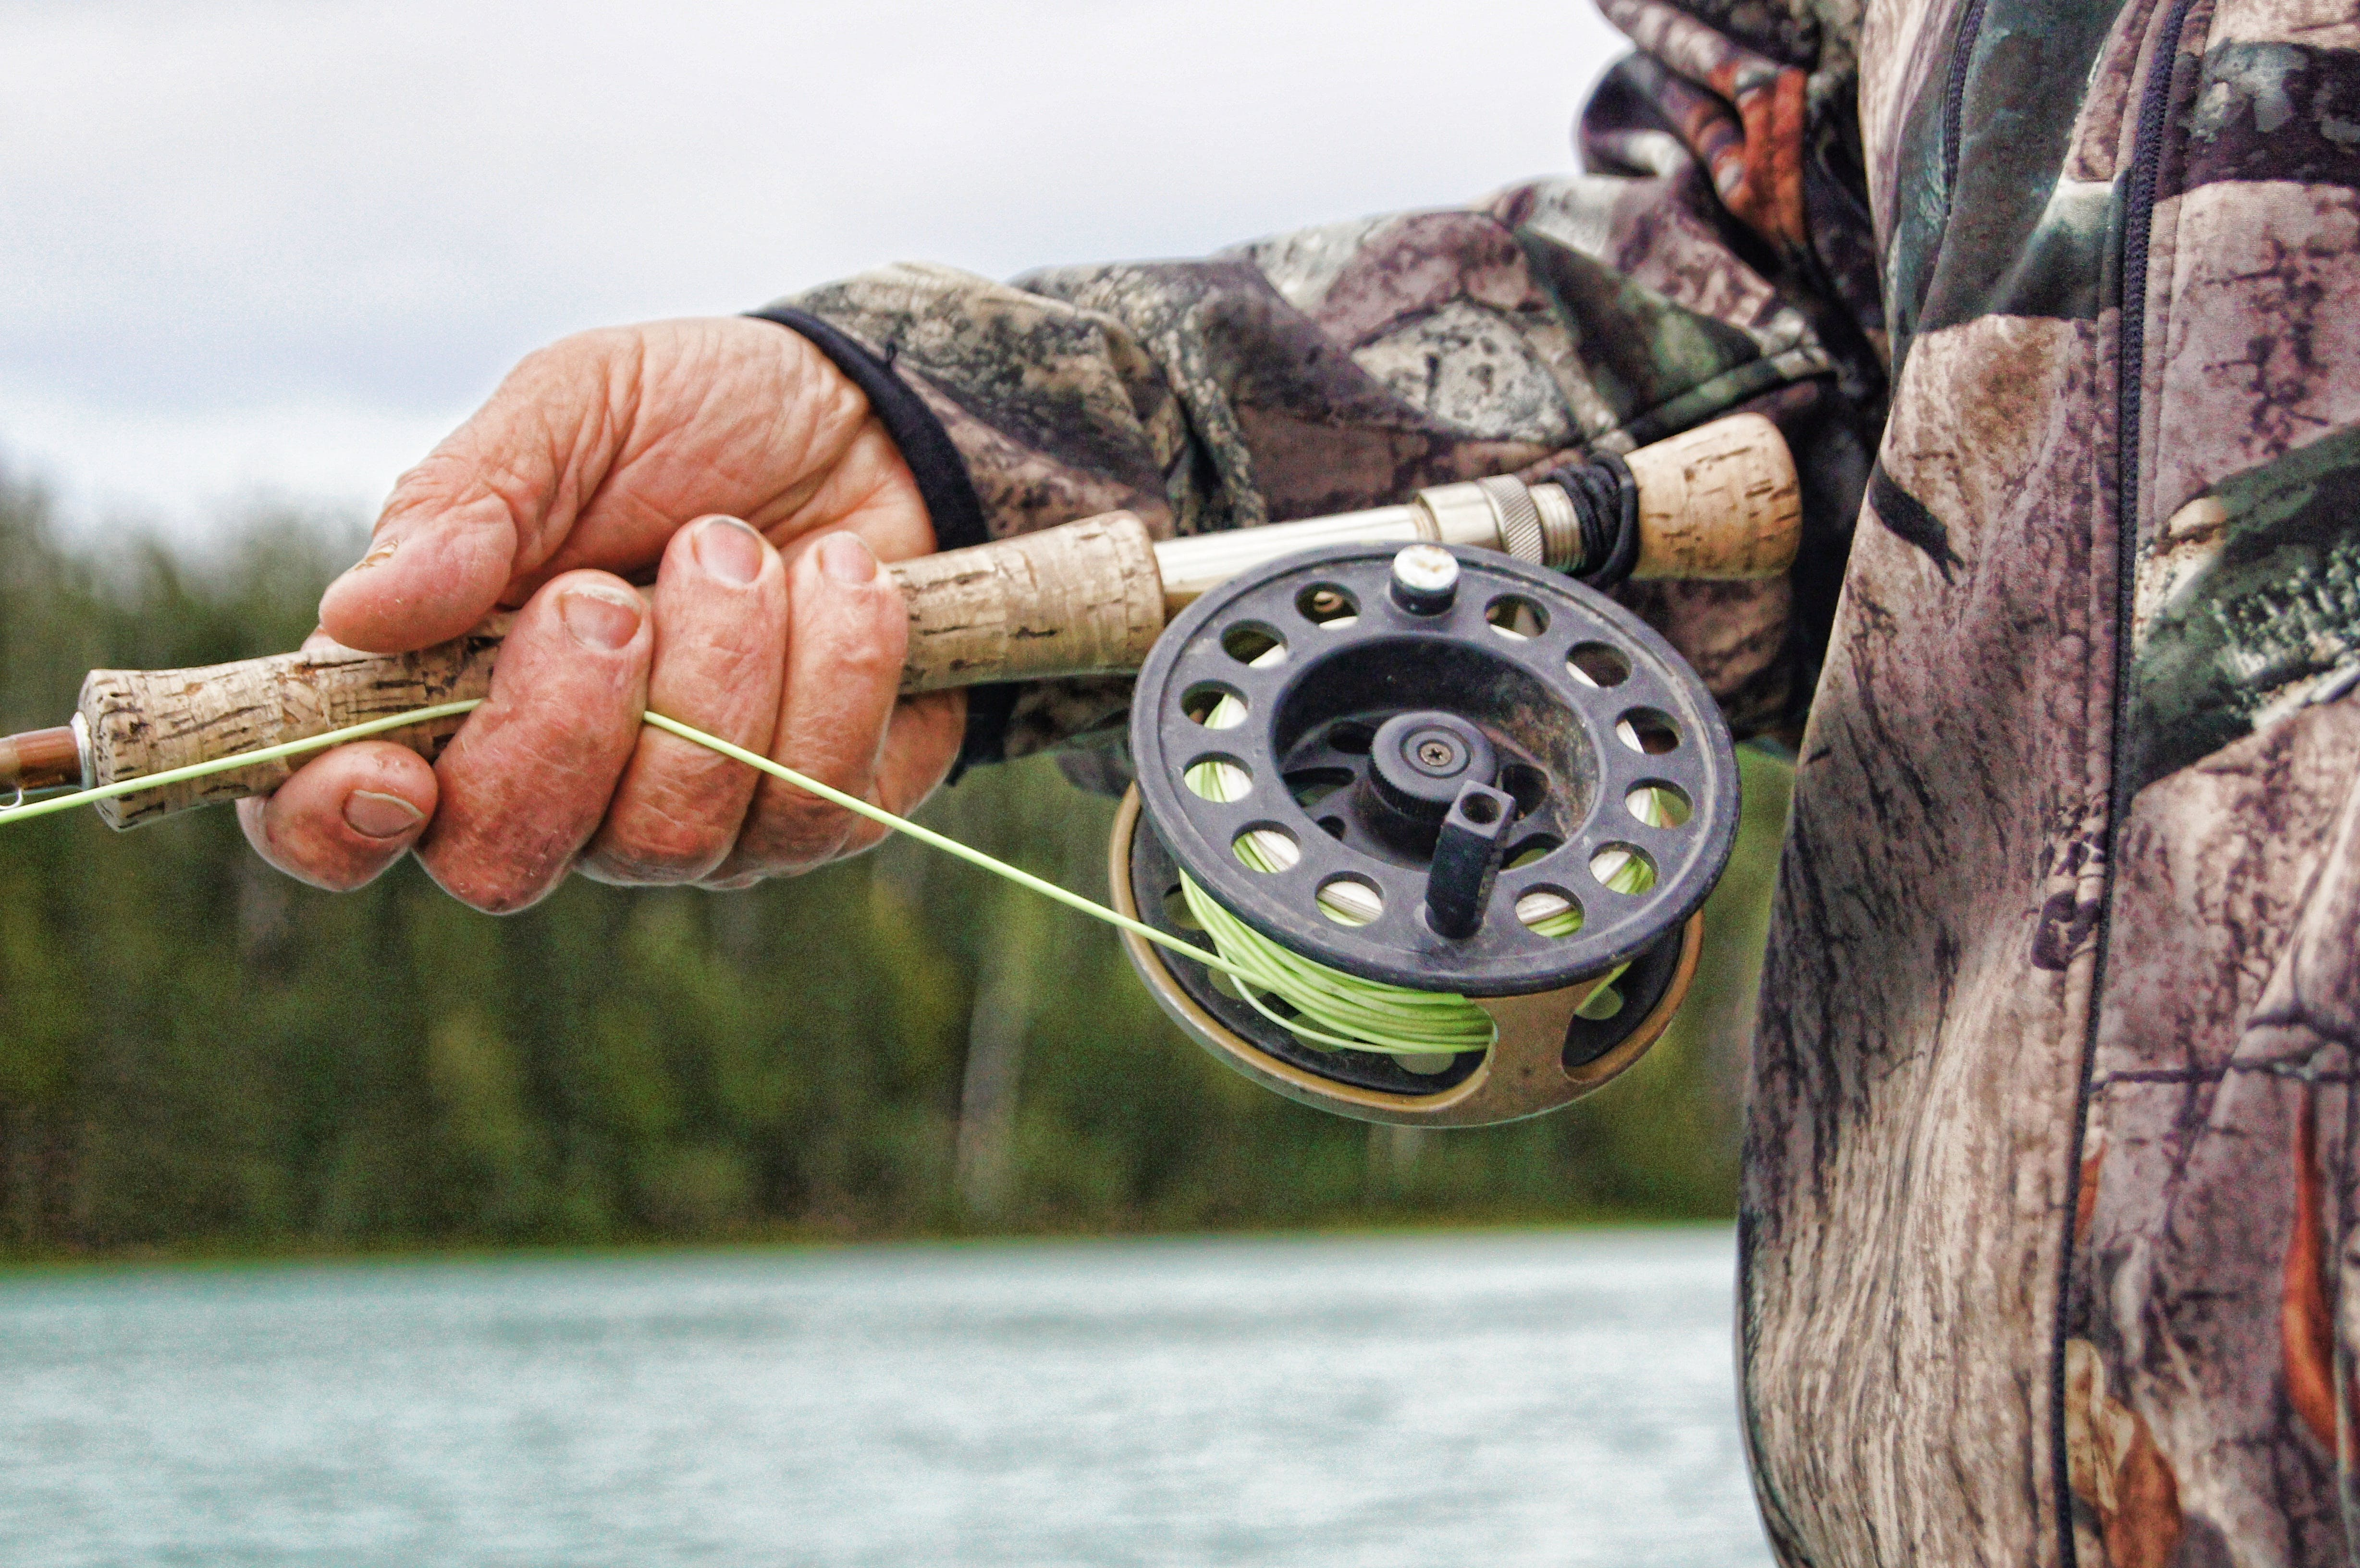 Free stock photo of fishing, man, person, hand